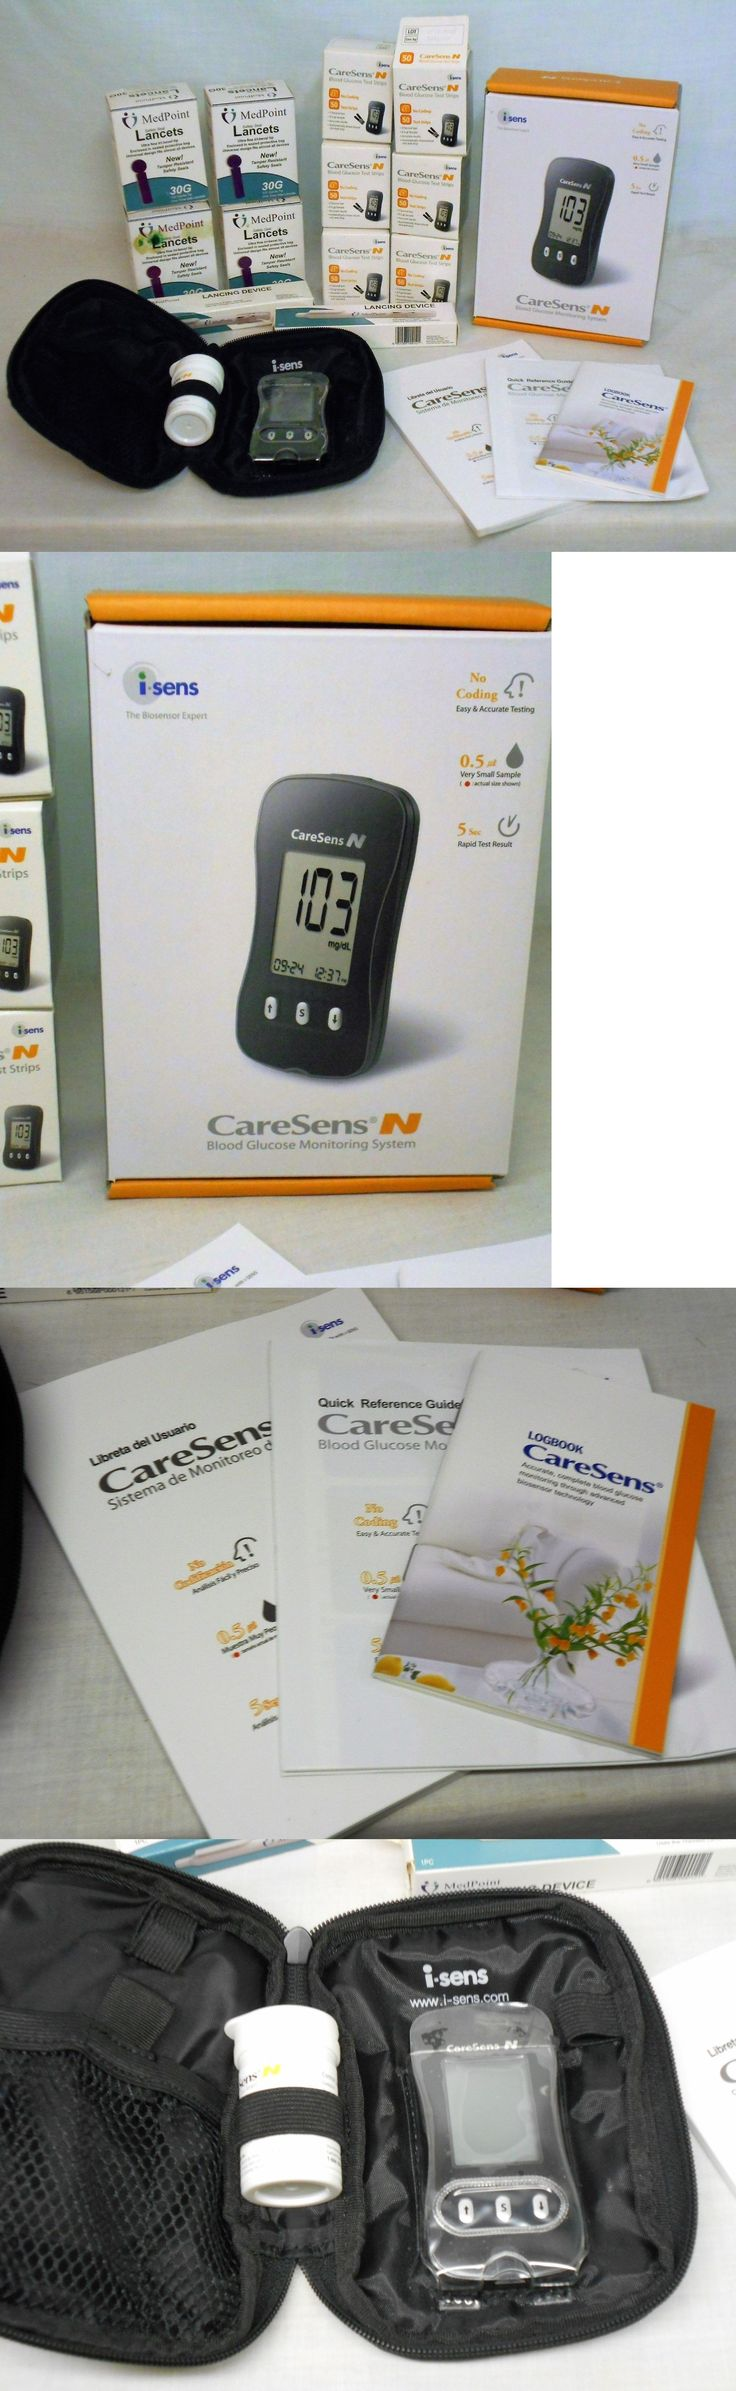 Glucose Monitors: Caresens N Blood Glucose Monitoring System Lancing Device,Test Strips, Lancets -> BUY IT NOW ONLY: $160.0 on eBay!